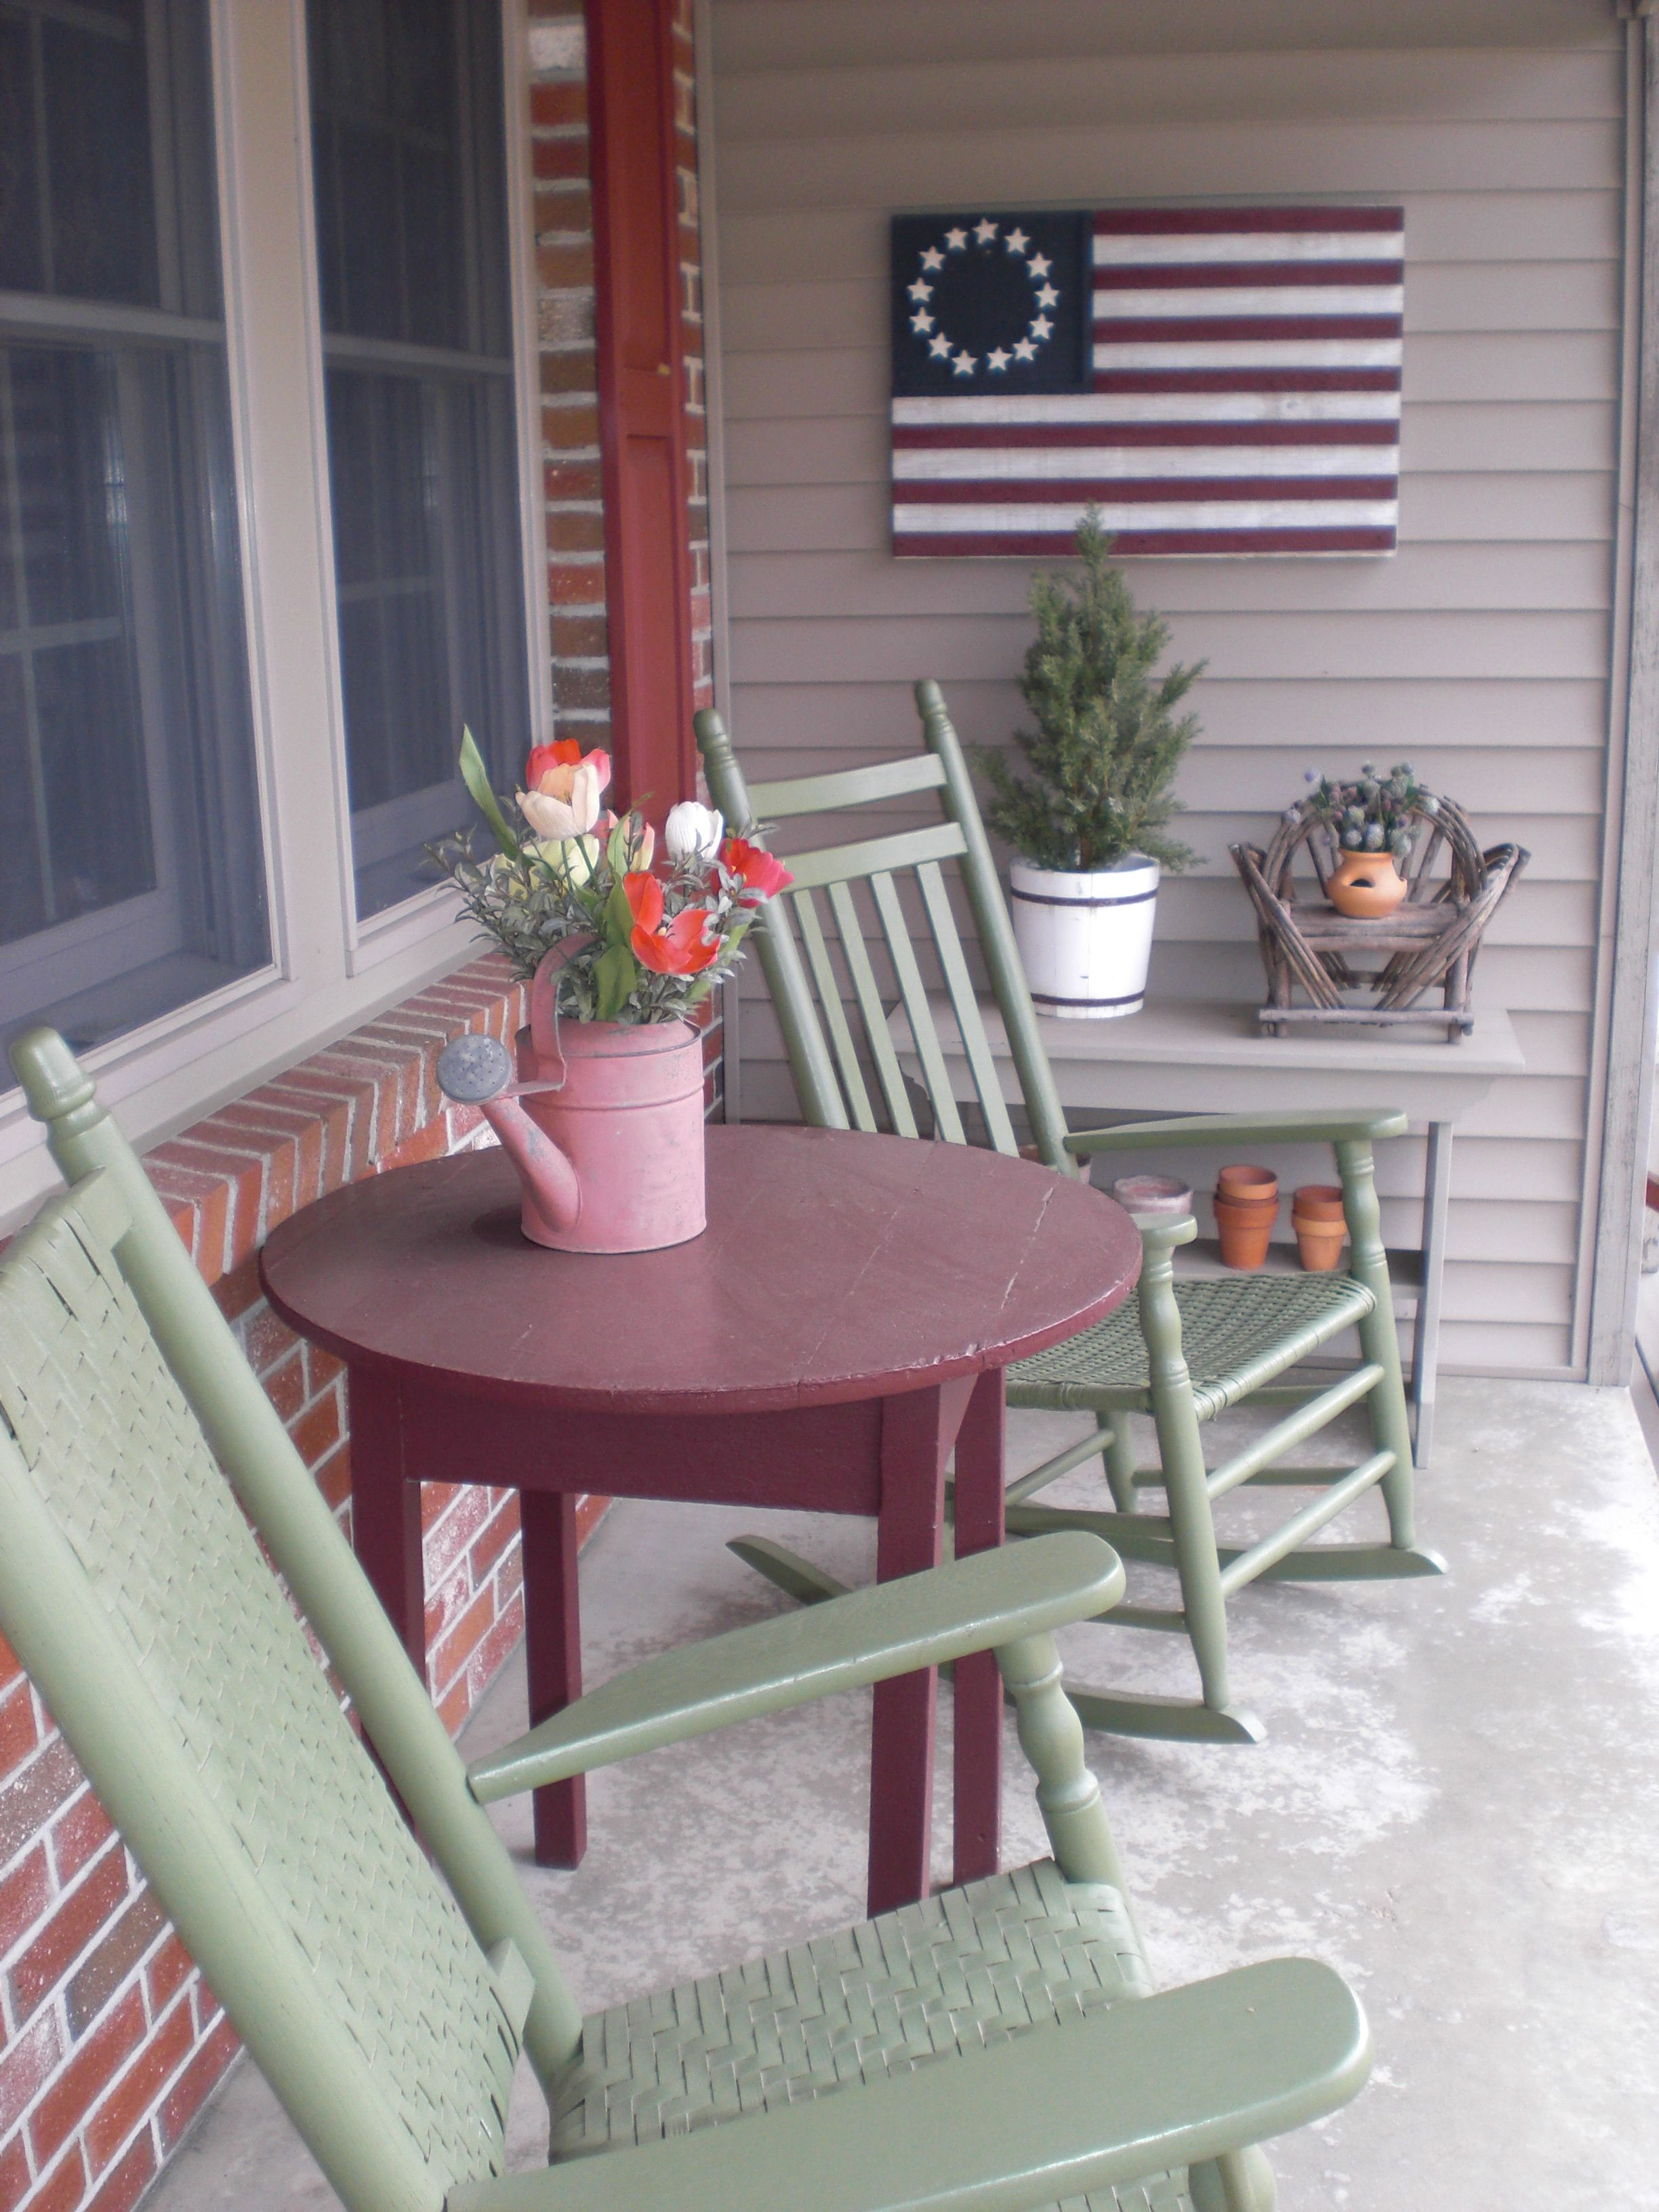 Incredible Like The Flag Bench Table And Sprinkle Can In 2019 Patio Short Links Chair Design For Home Short Linksinfo